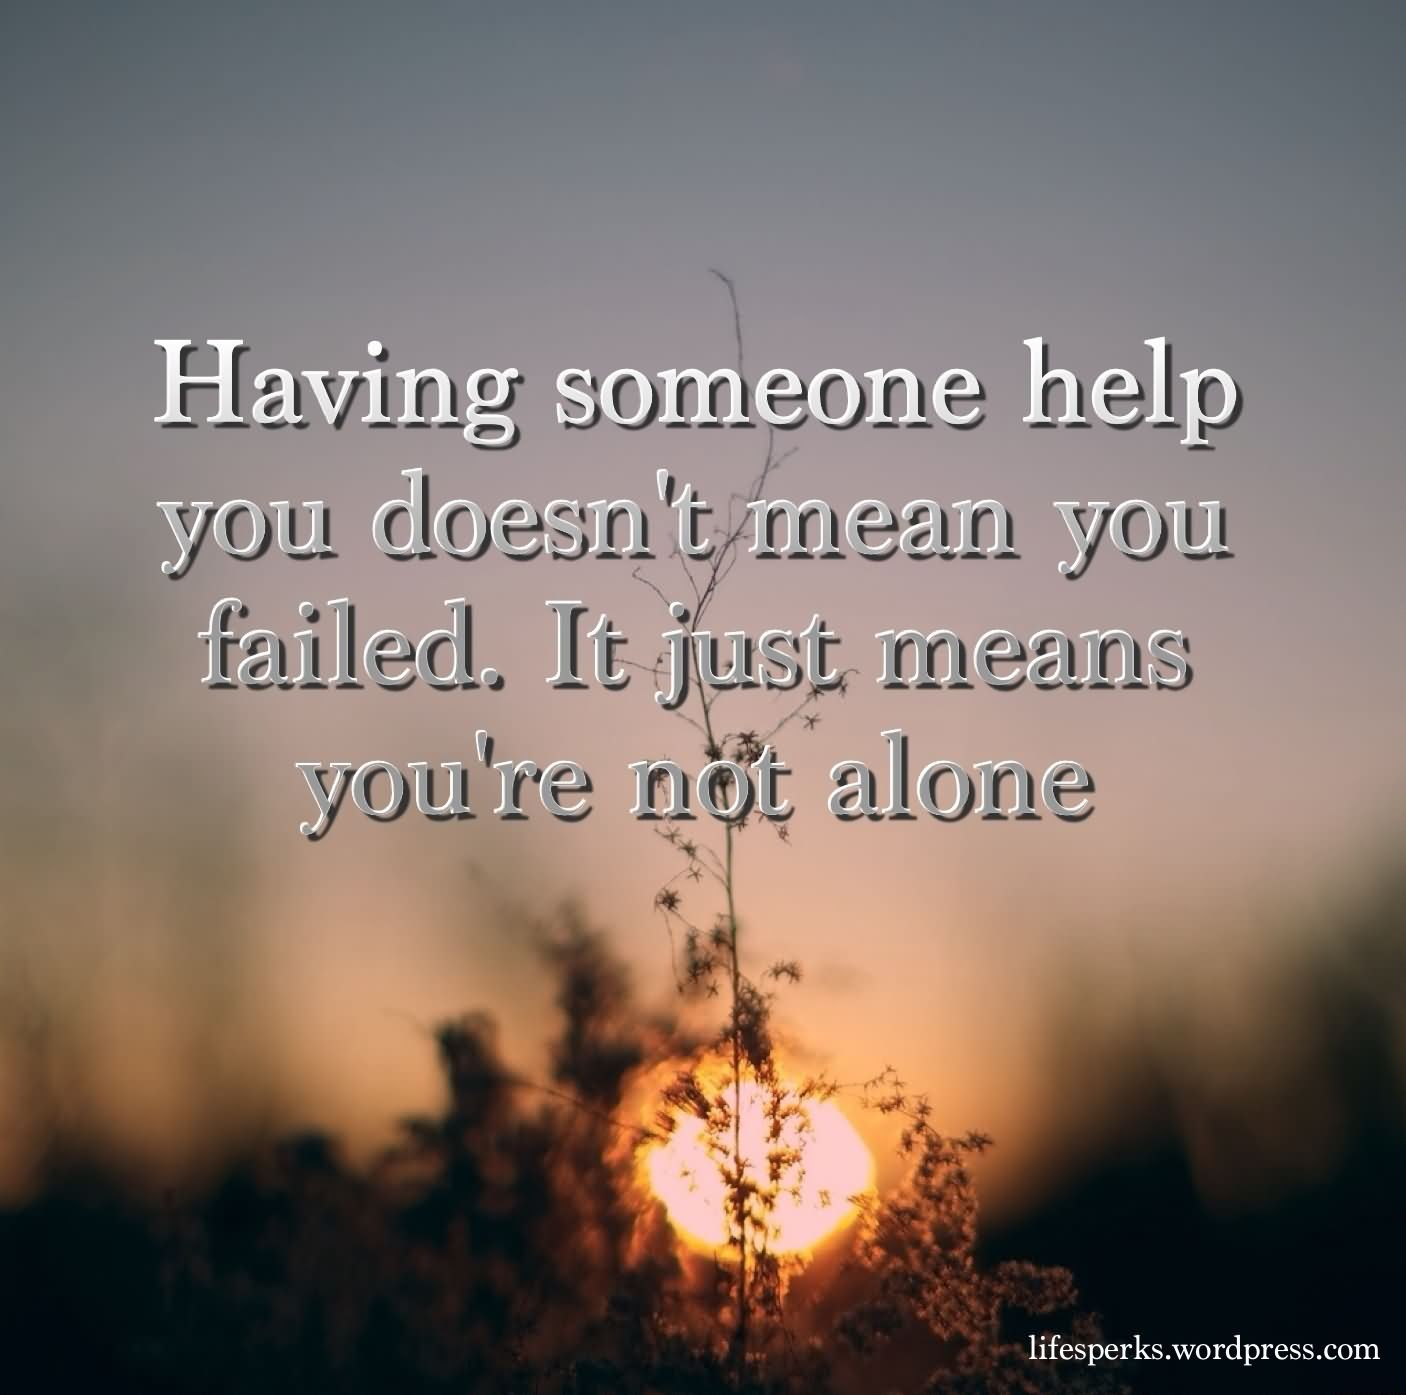 Quotes About Helping 39 Famous Helping Quotes And Sayings About Help In Hard Times